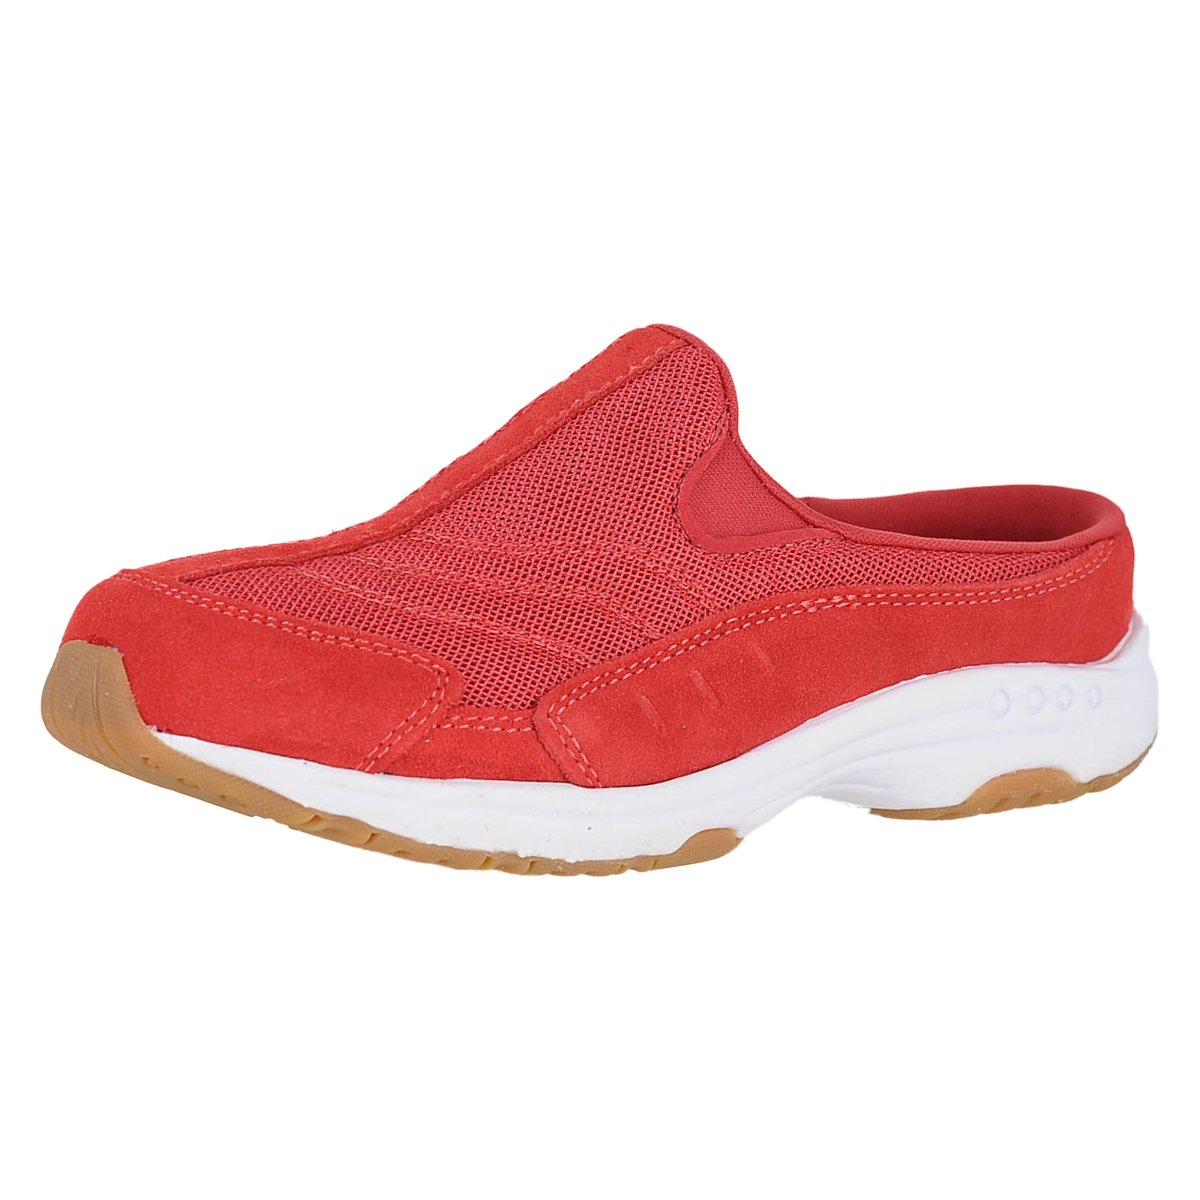 Easy Spirit Travel Time Women's Slip On 7.5 B(M) US Red